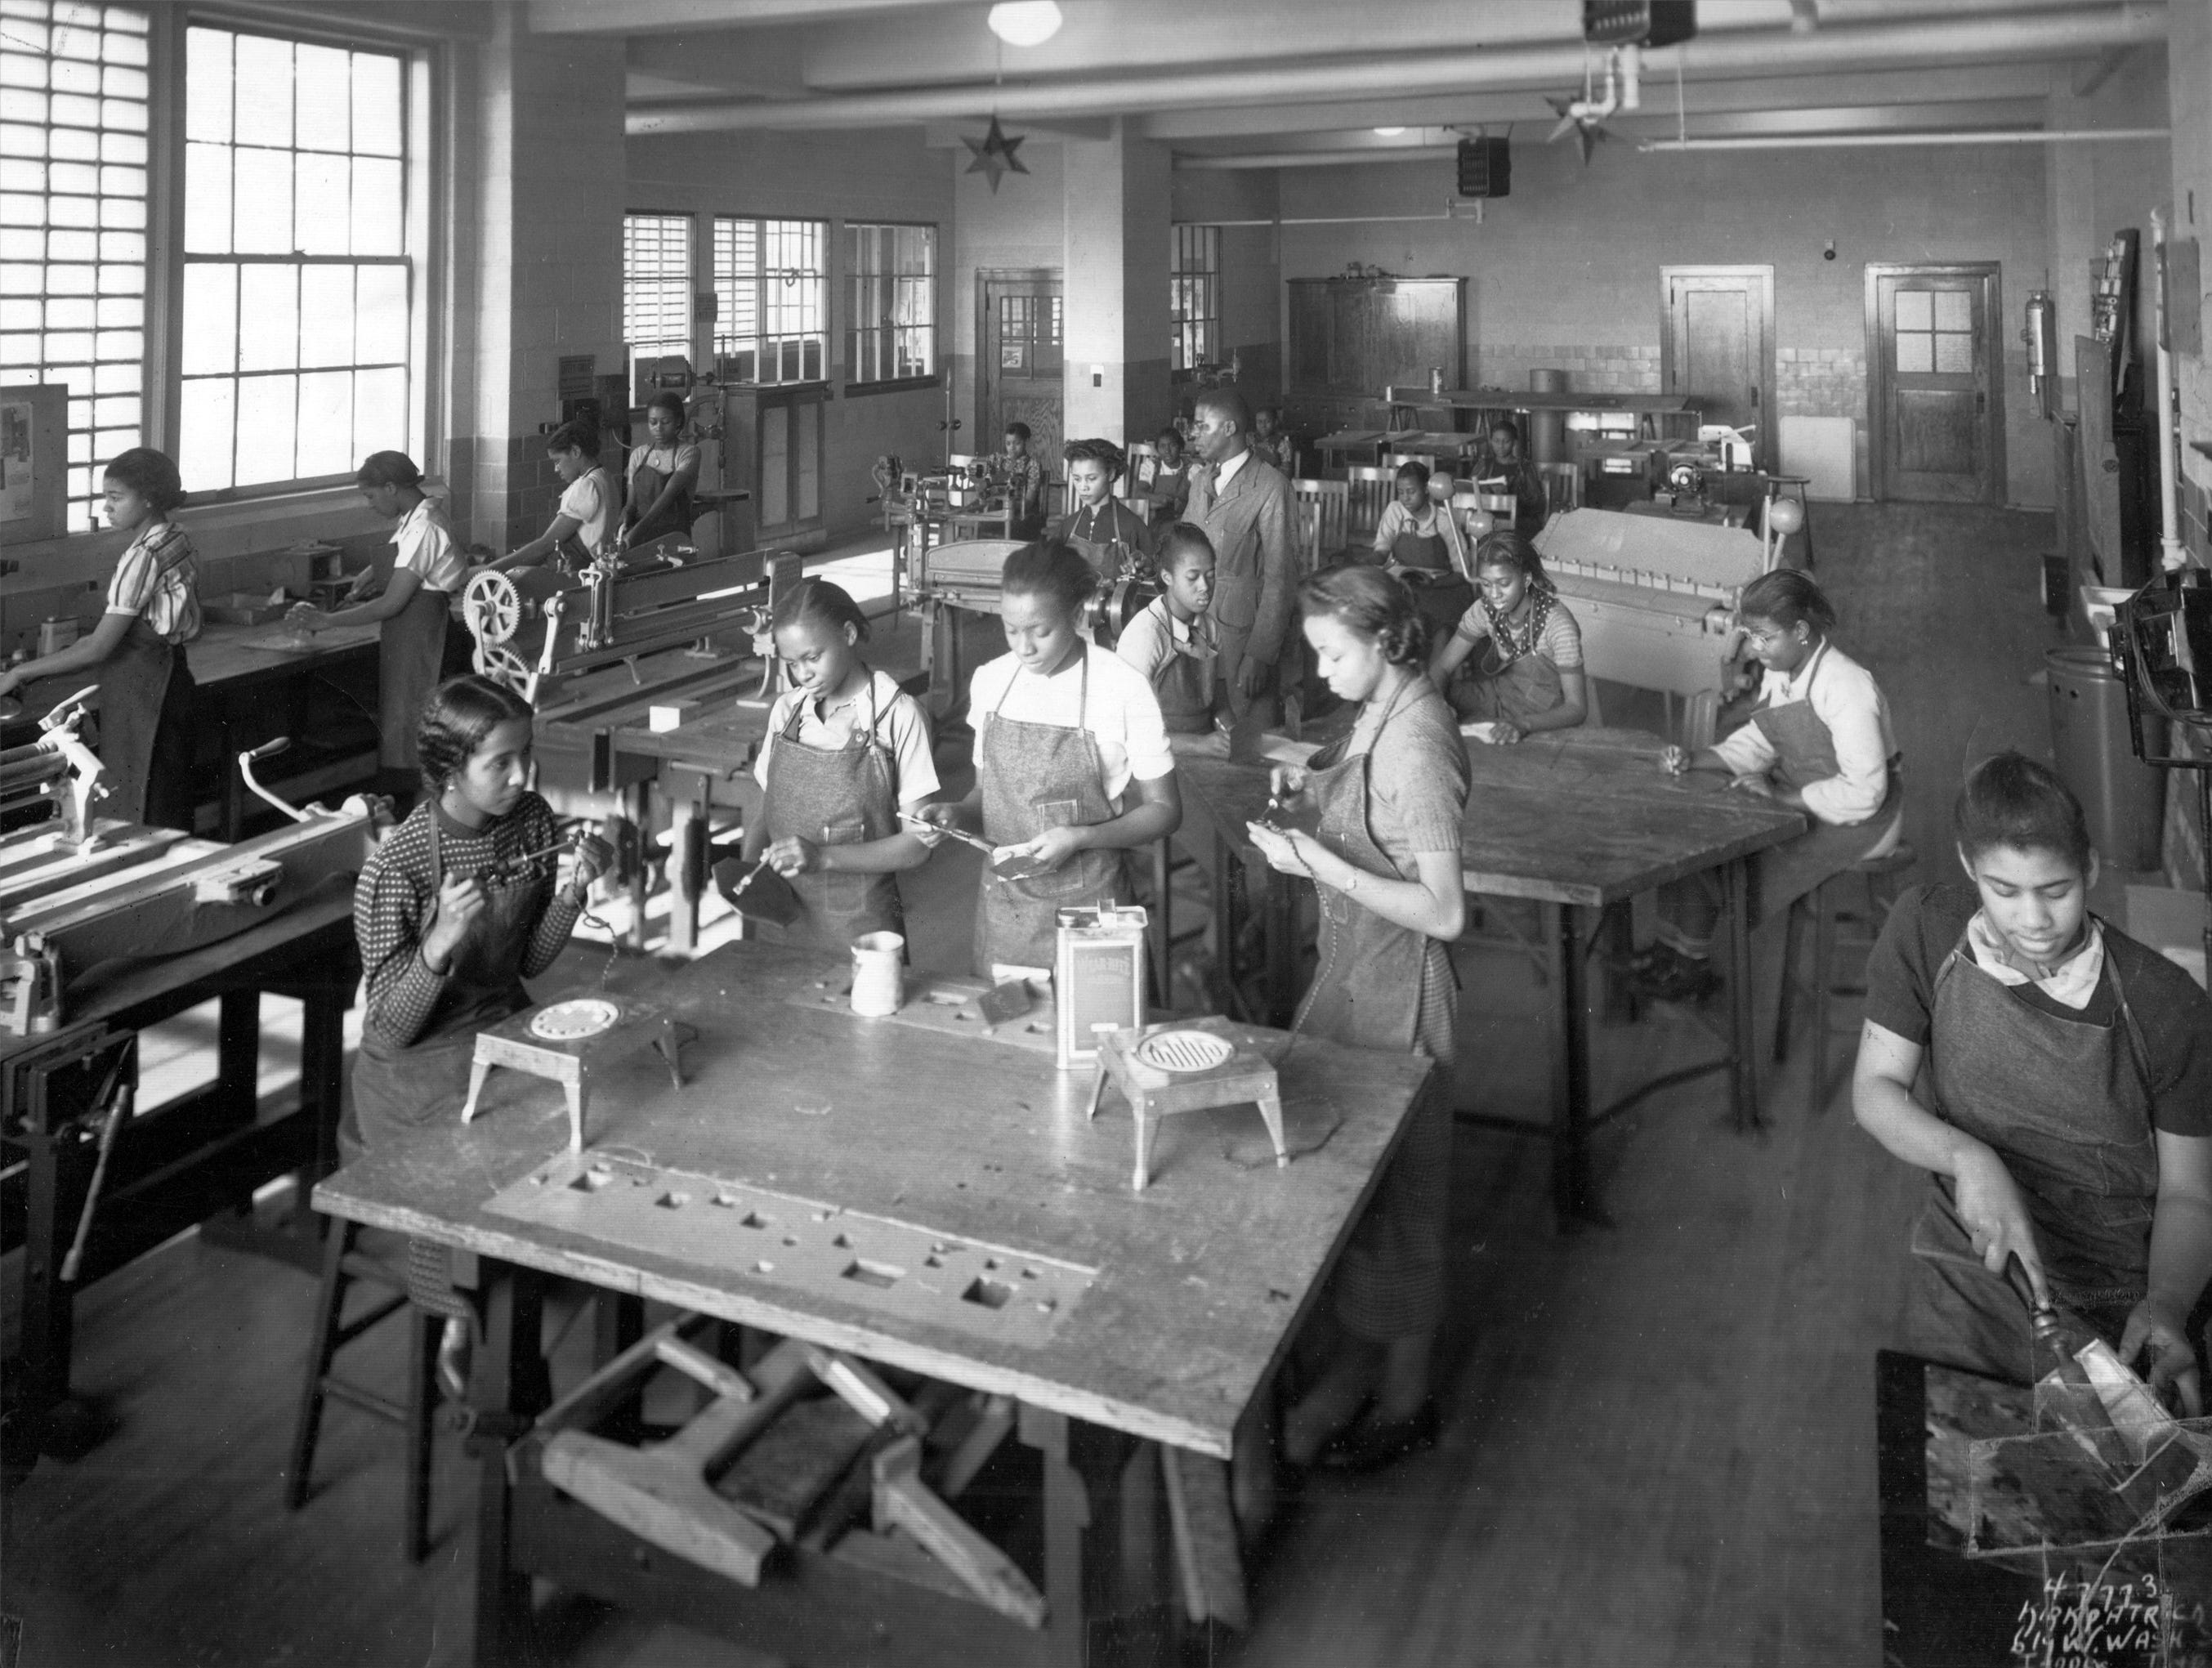 Girls in a shop class at Crispus Attucks High School - date unknown